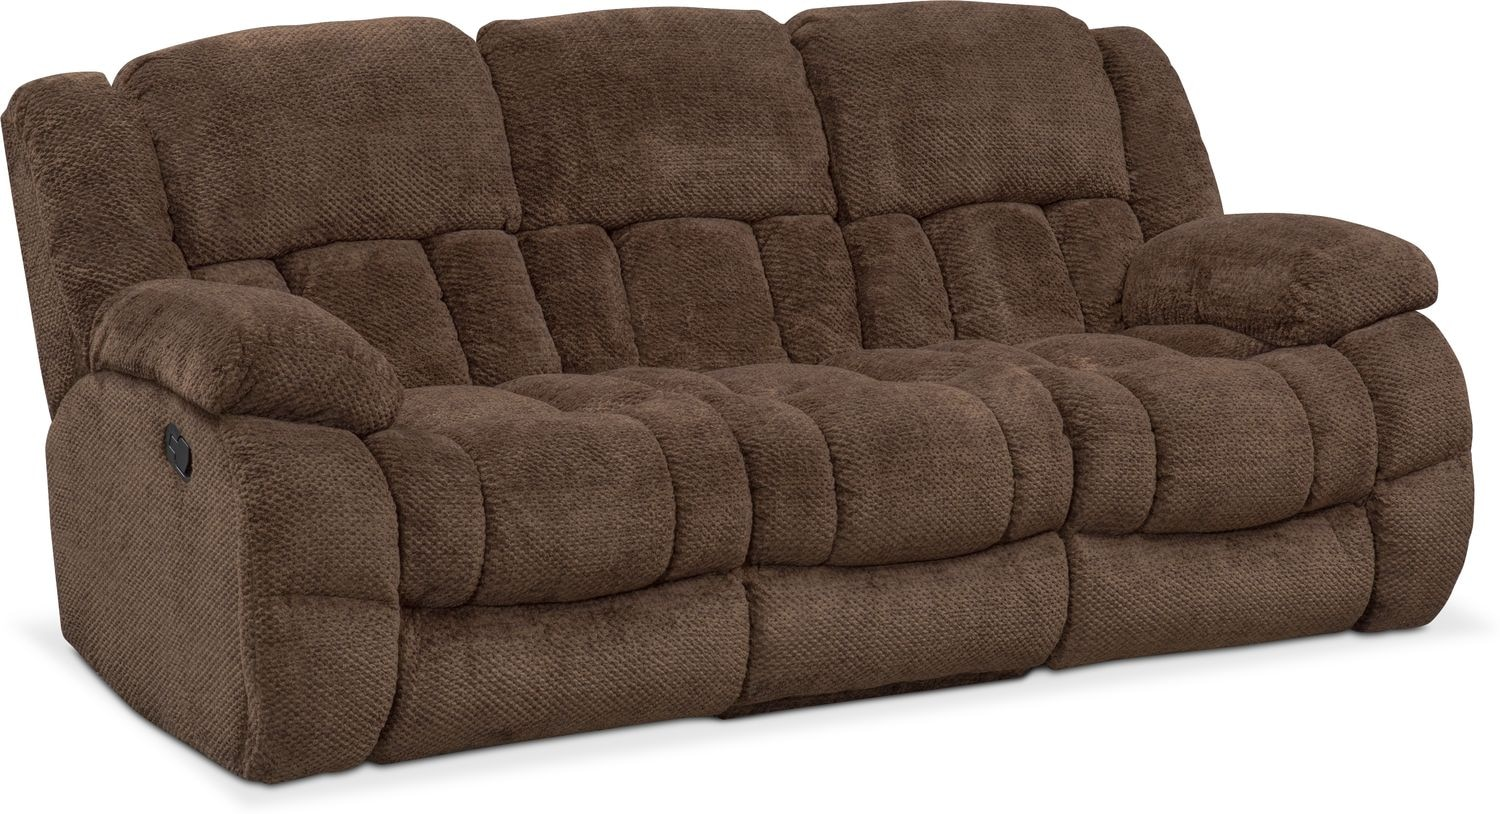 Living Room Furniture - Turbo Reclining Sofa